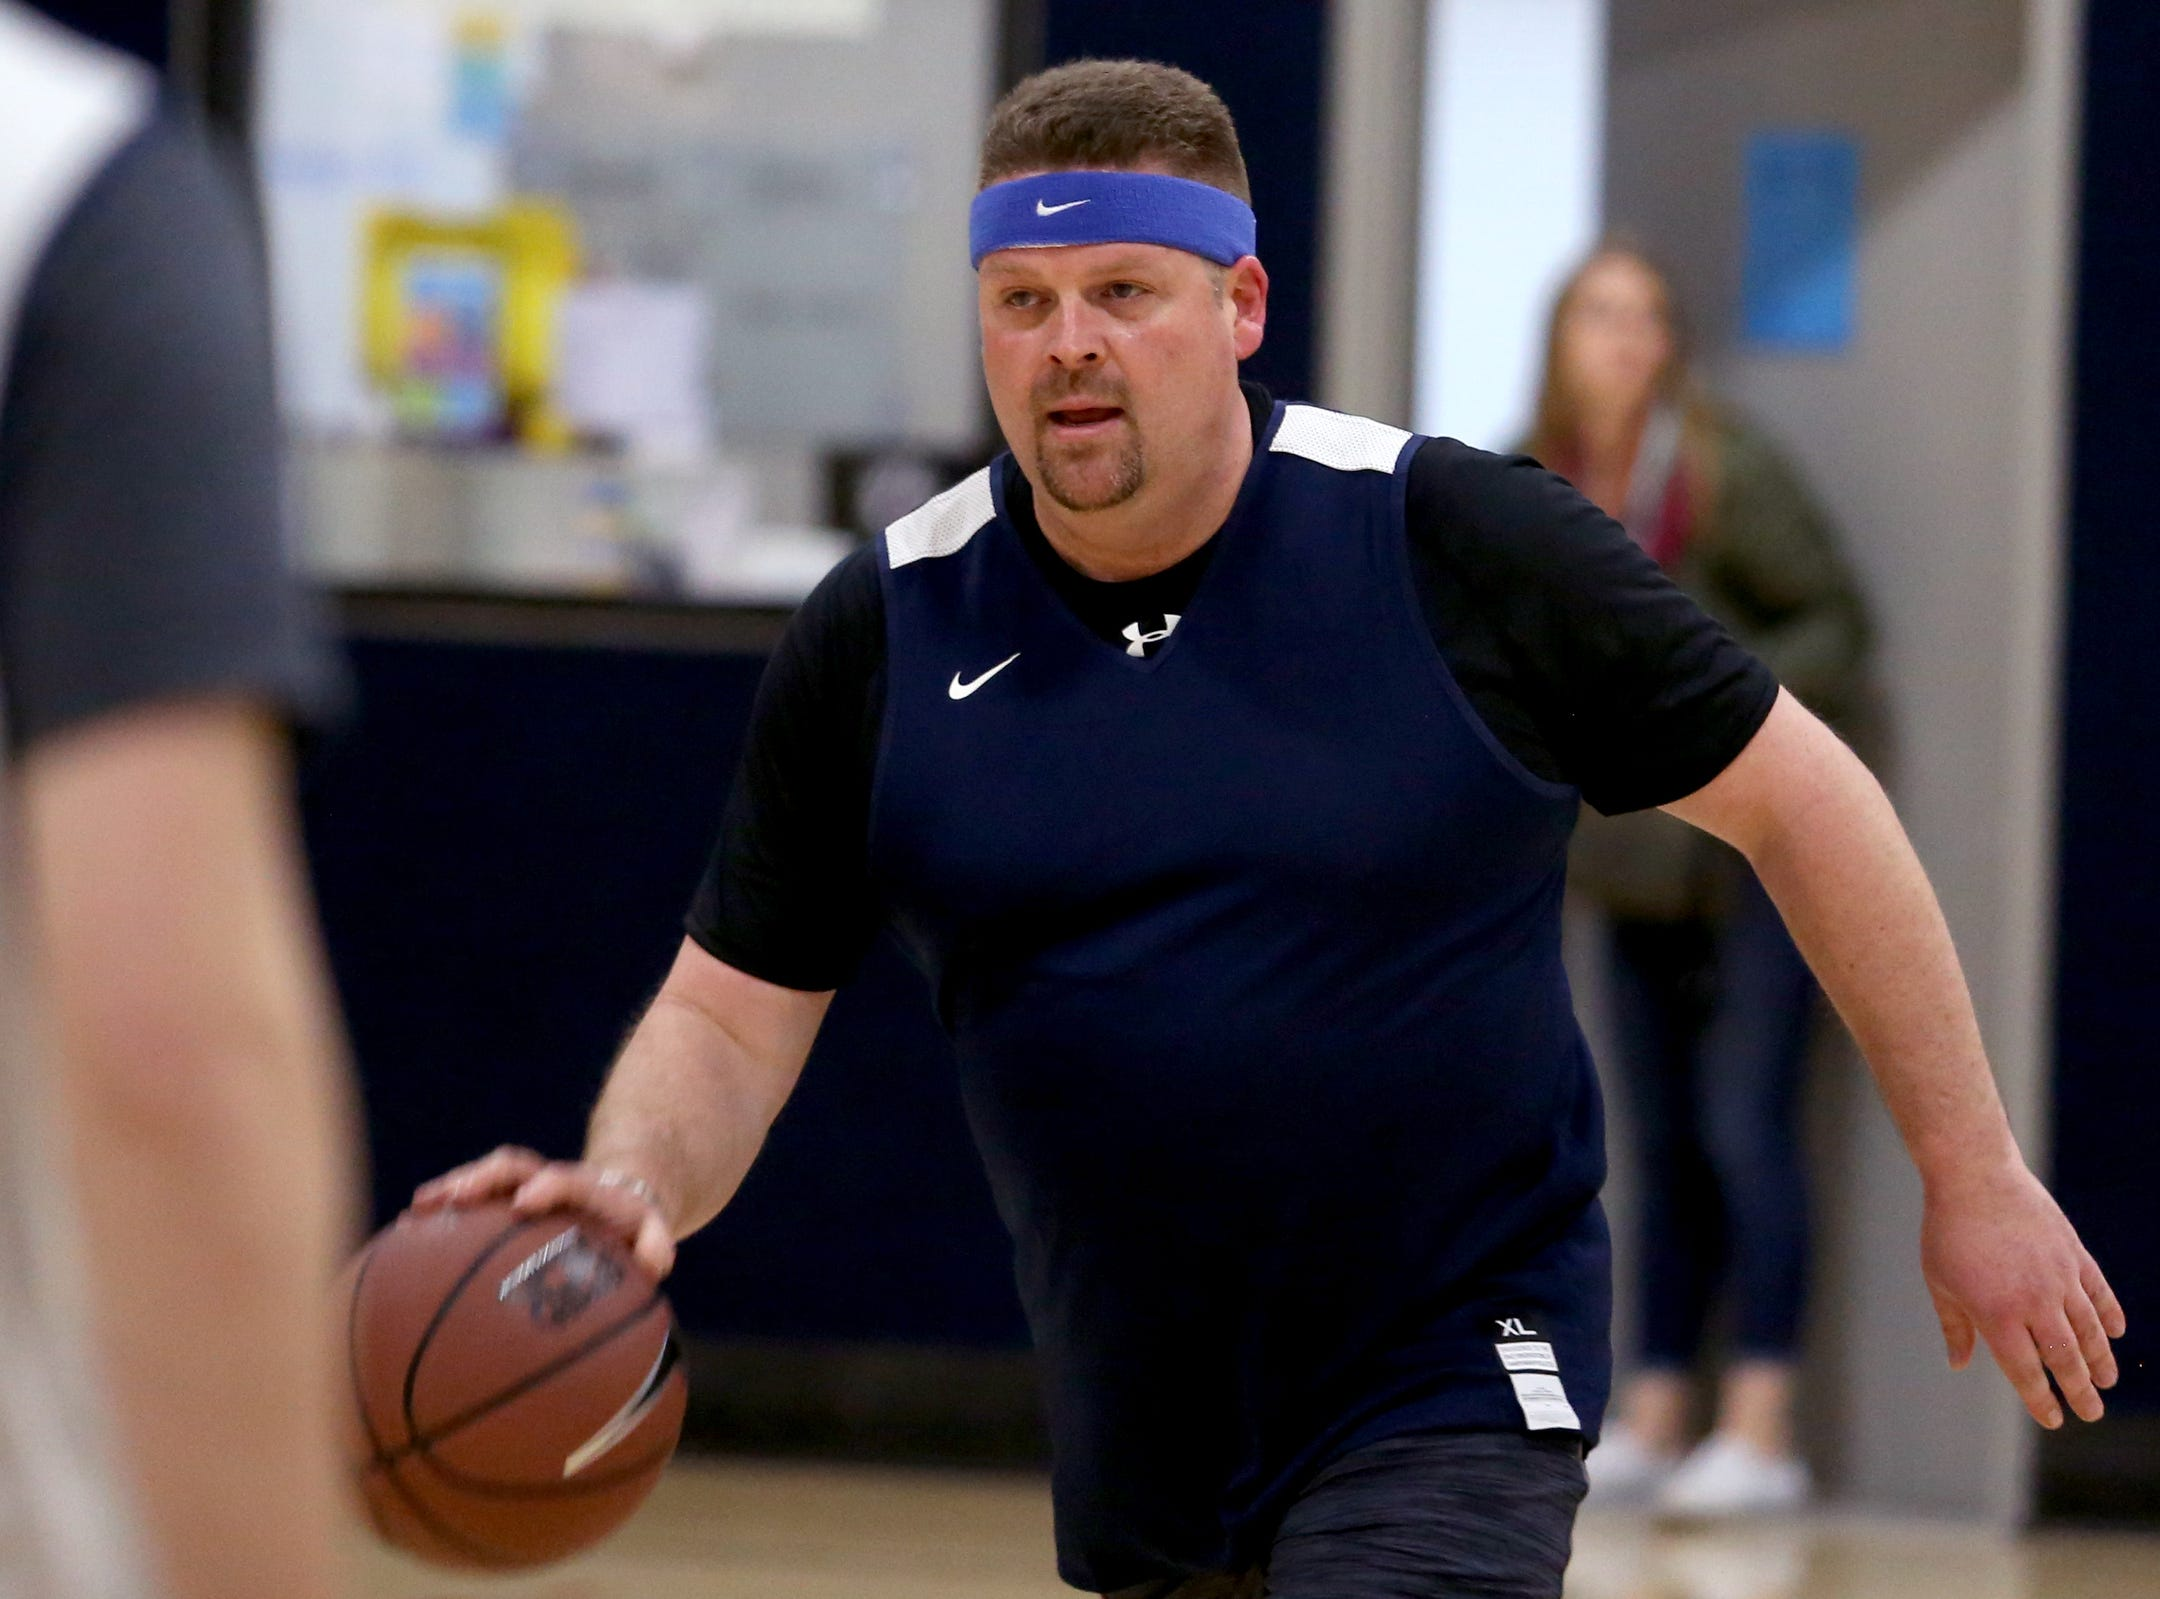 Rep. David Brock Smith plays in the second annual House vs. Senate charity basketball tournament at the Boys & Girls Club in Salem on March 13, 2019. The tournament raised more than $10,000 for the Oregon Alliance of Boys & Girls Clubs.